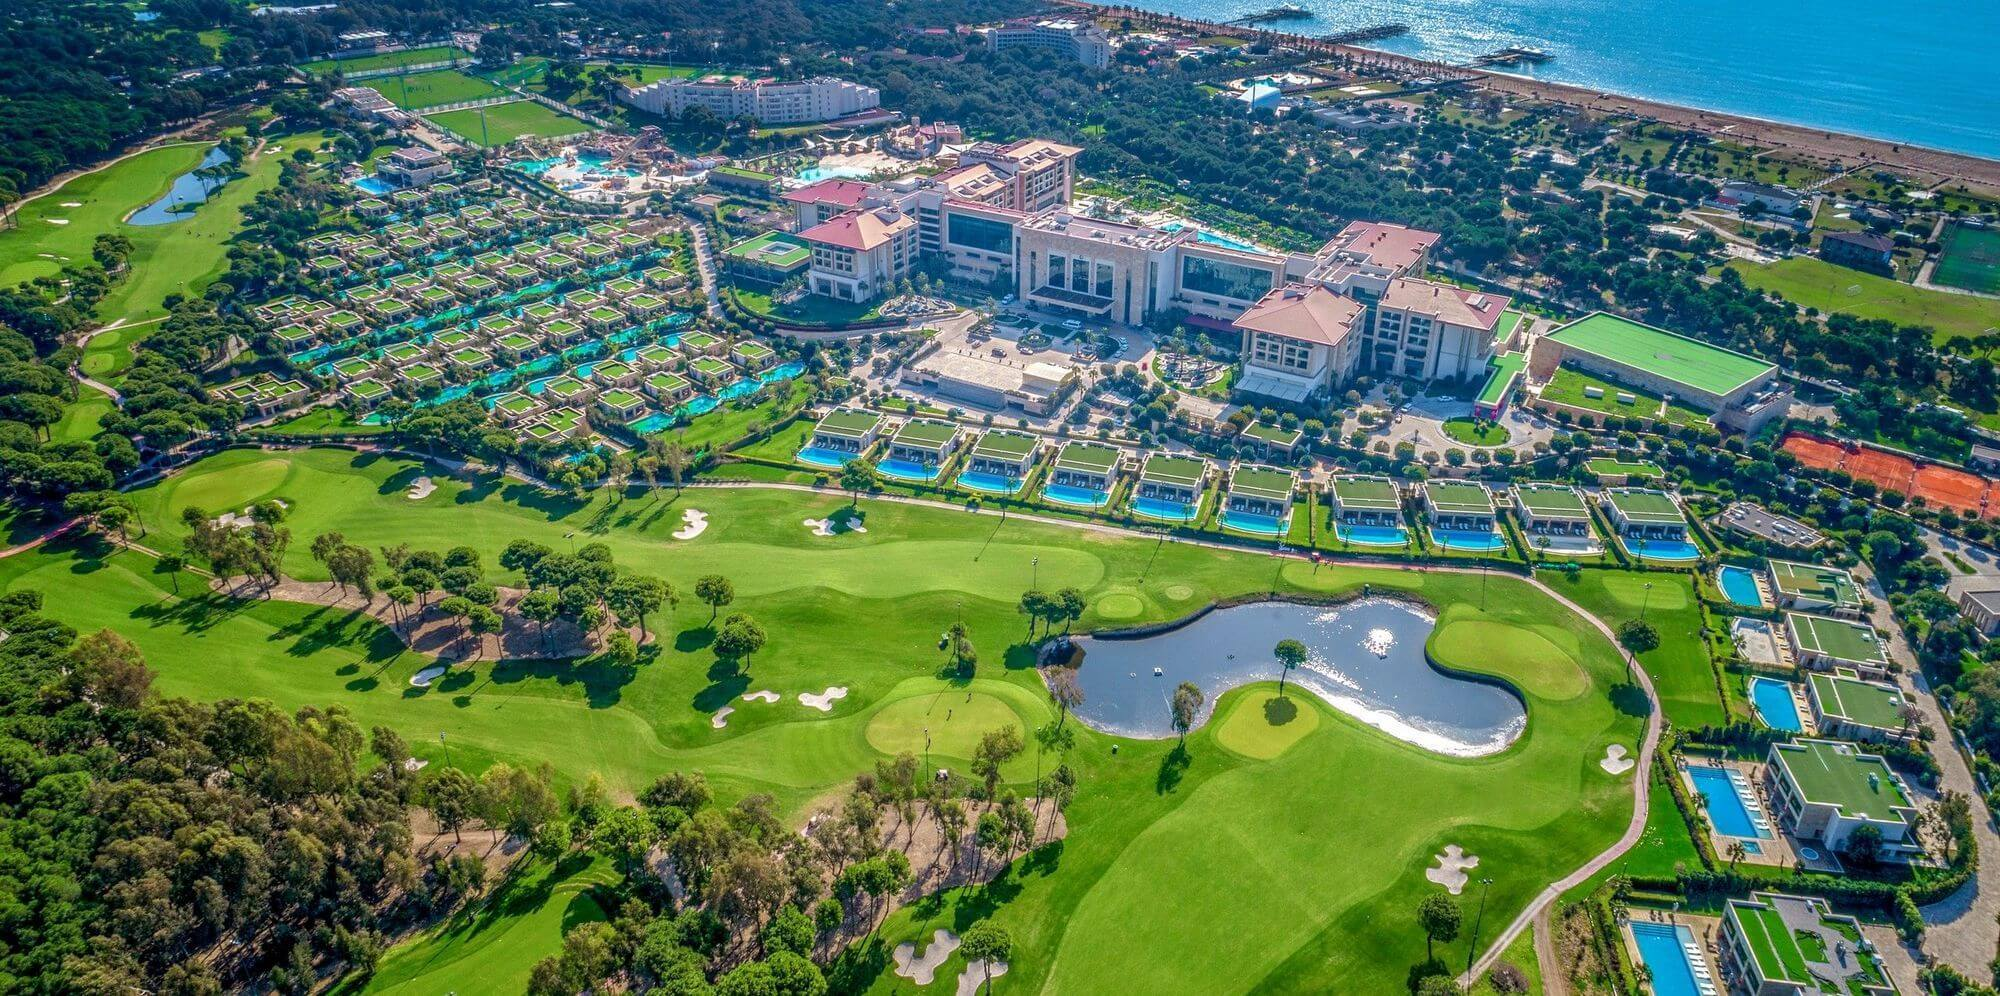 Overview of Belek as a destination for golfing holidays